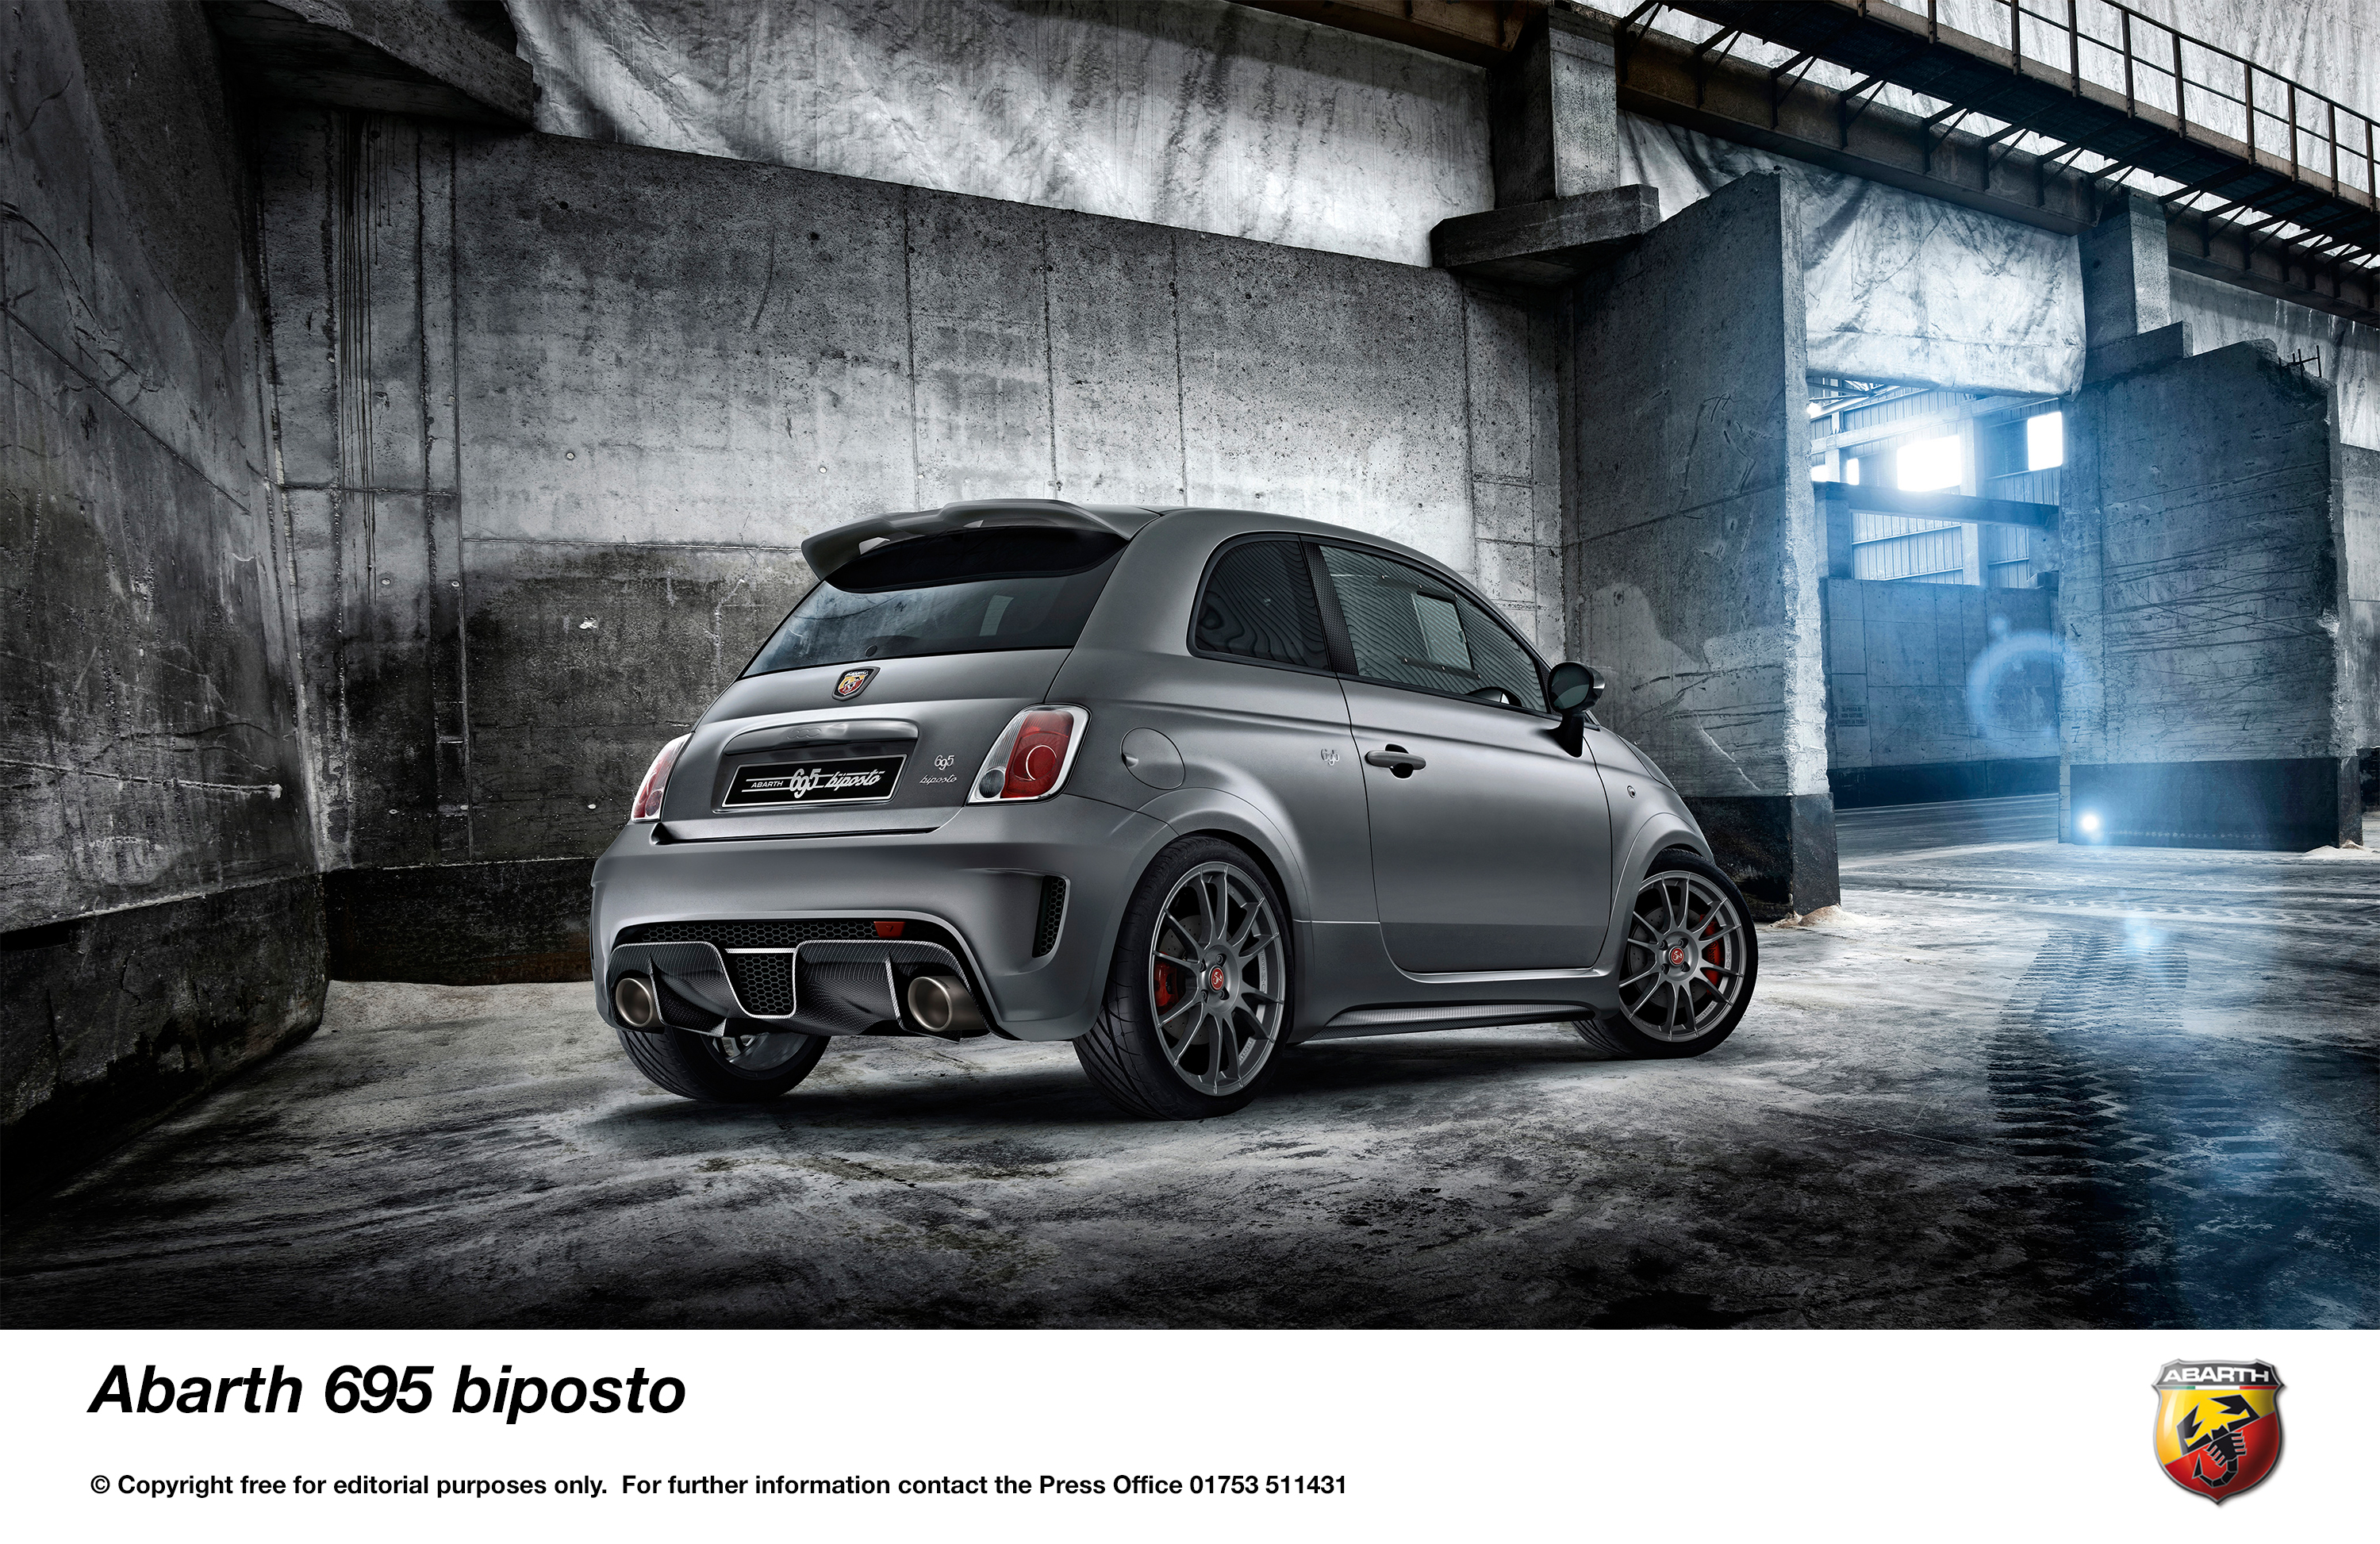 Johnston Chrysler Fiat >> THE MOST ABARTH OF ALL ABARTHS: THE ABARTH '695 BIPOSTO' - Press - Fiat Group Automobiles Press